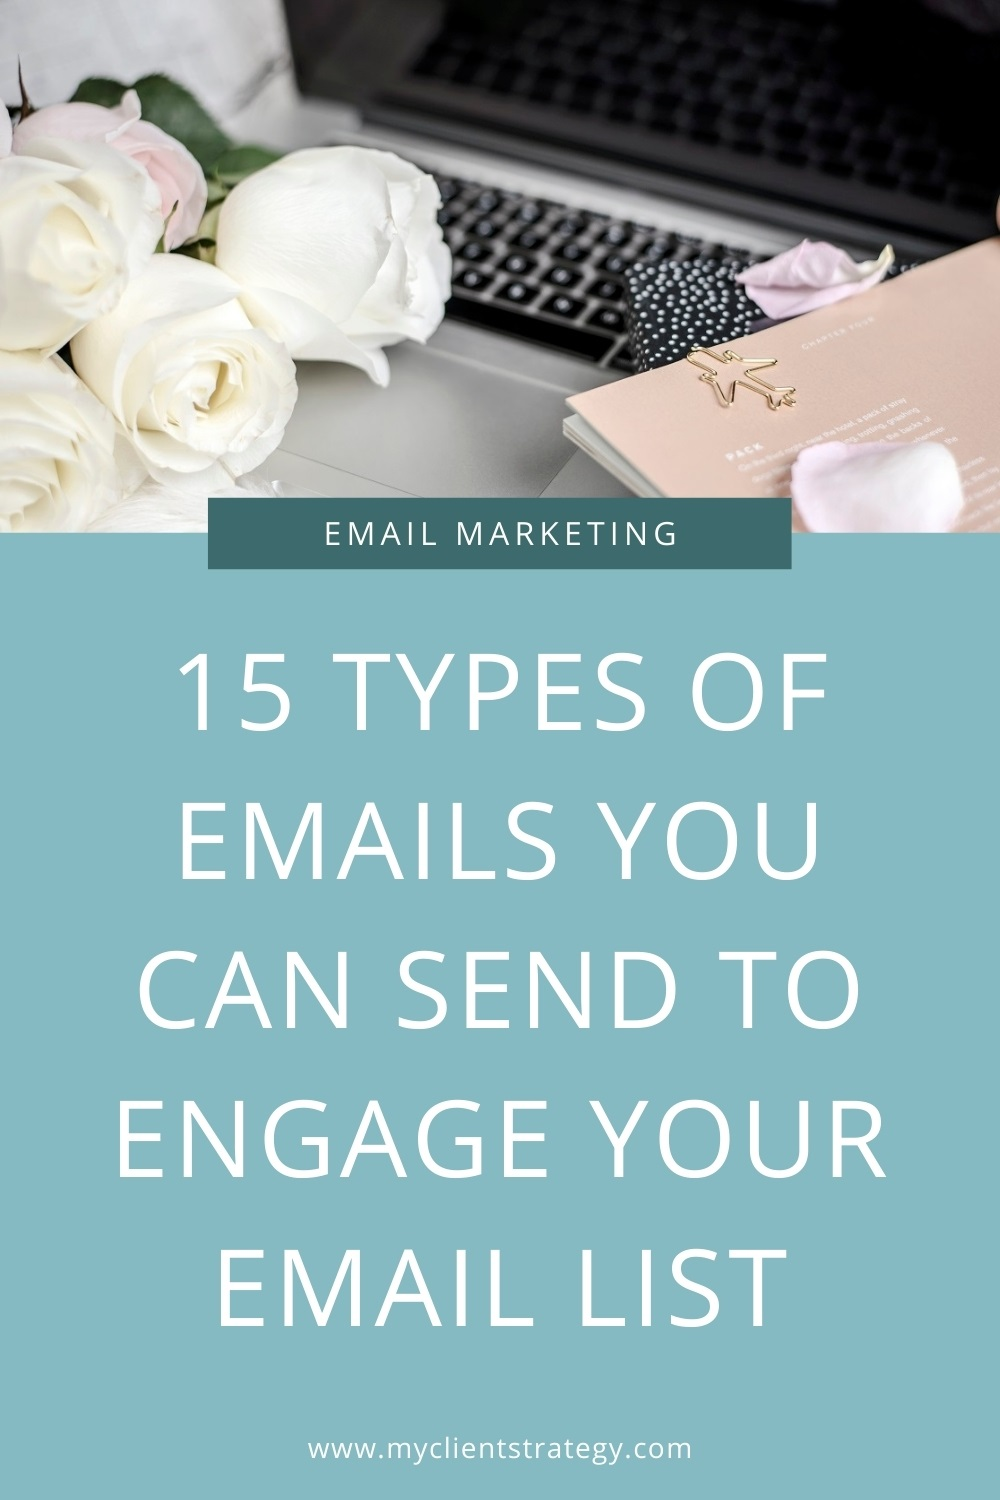 15 Types of emails you can send to engage your email list